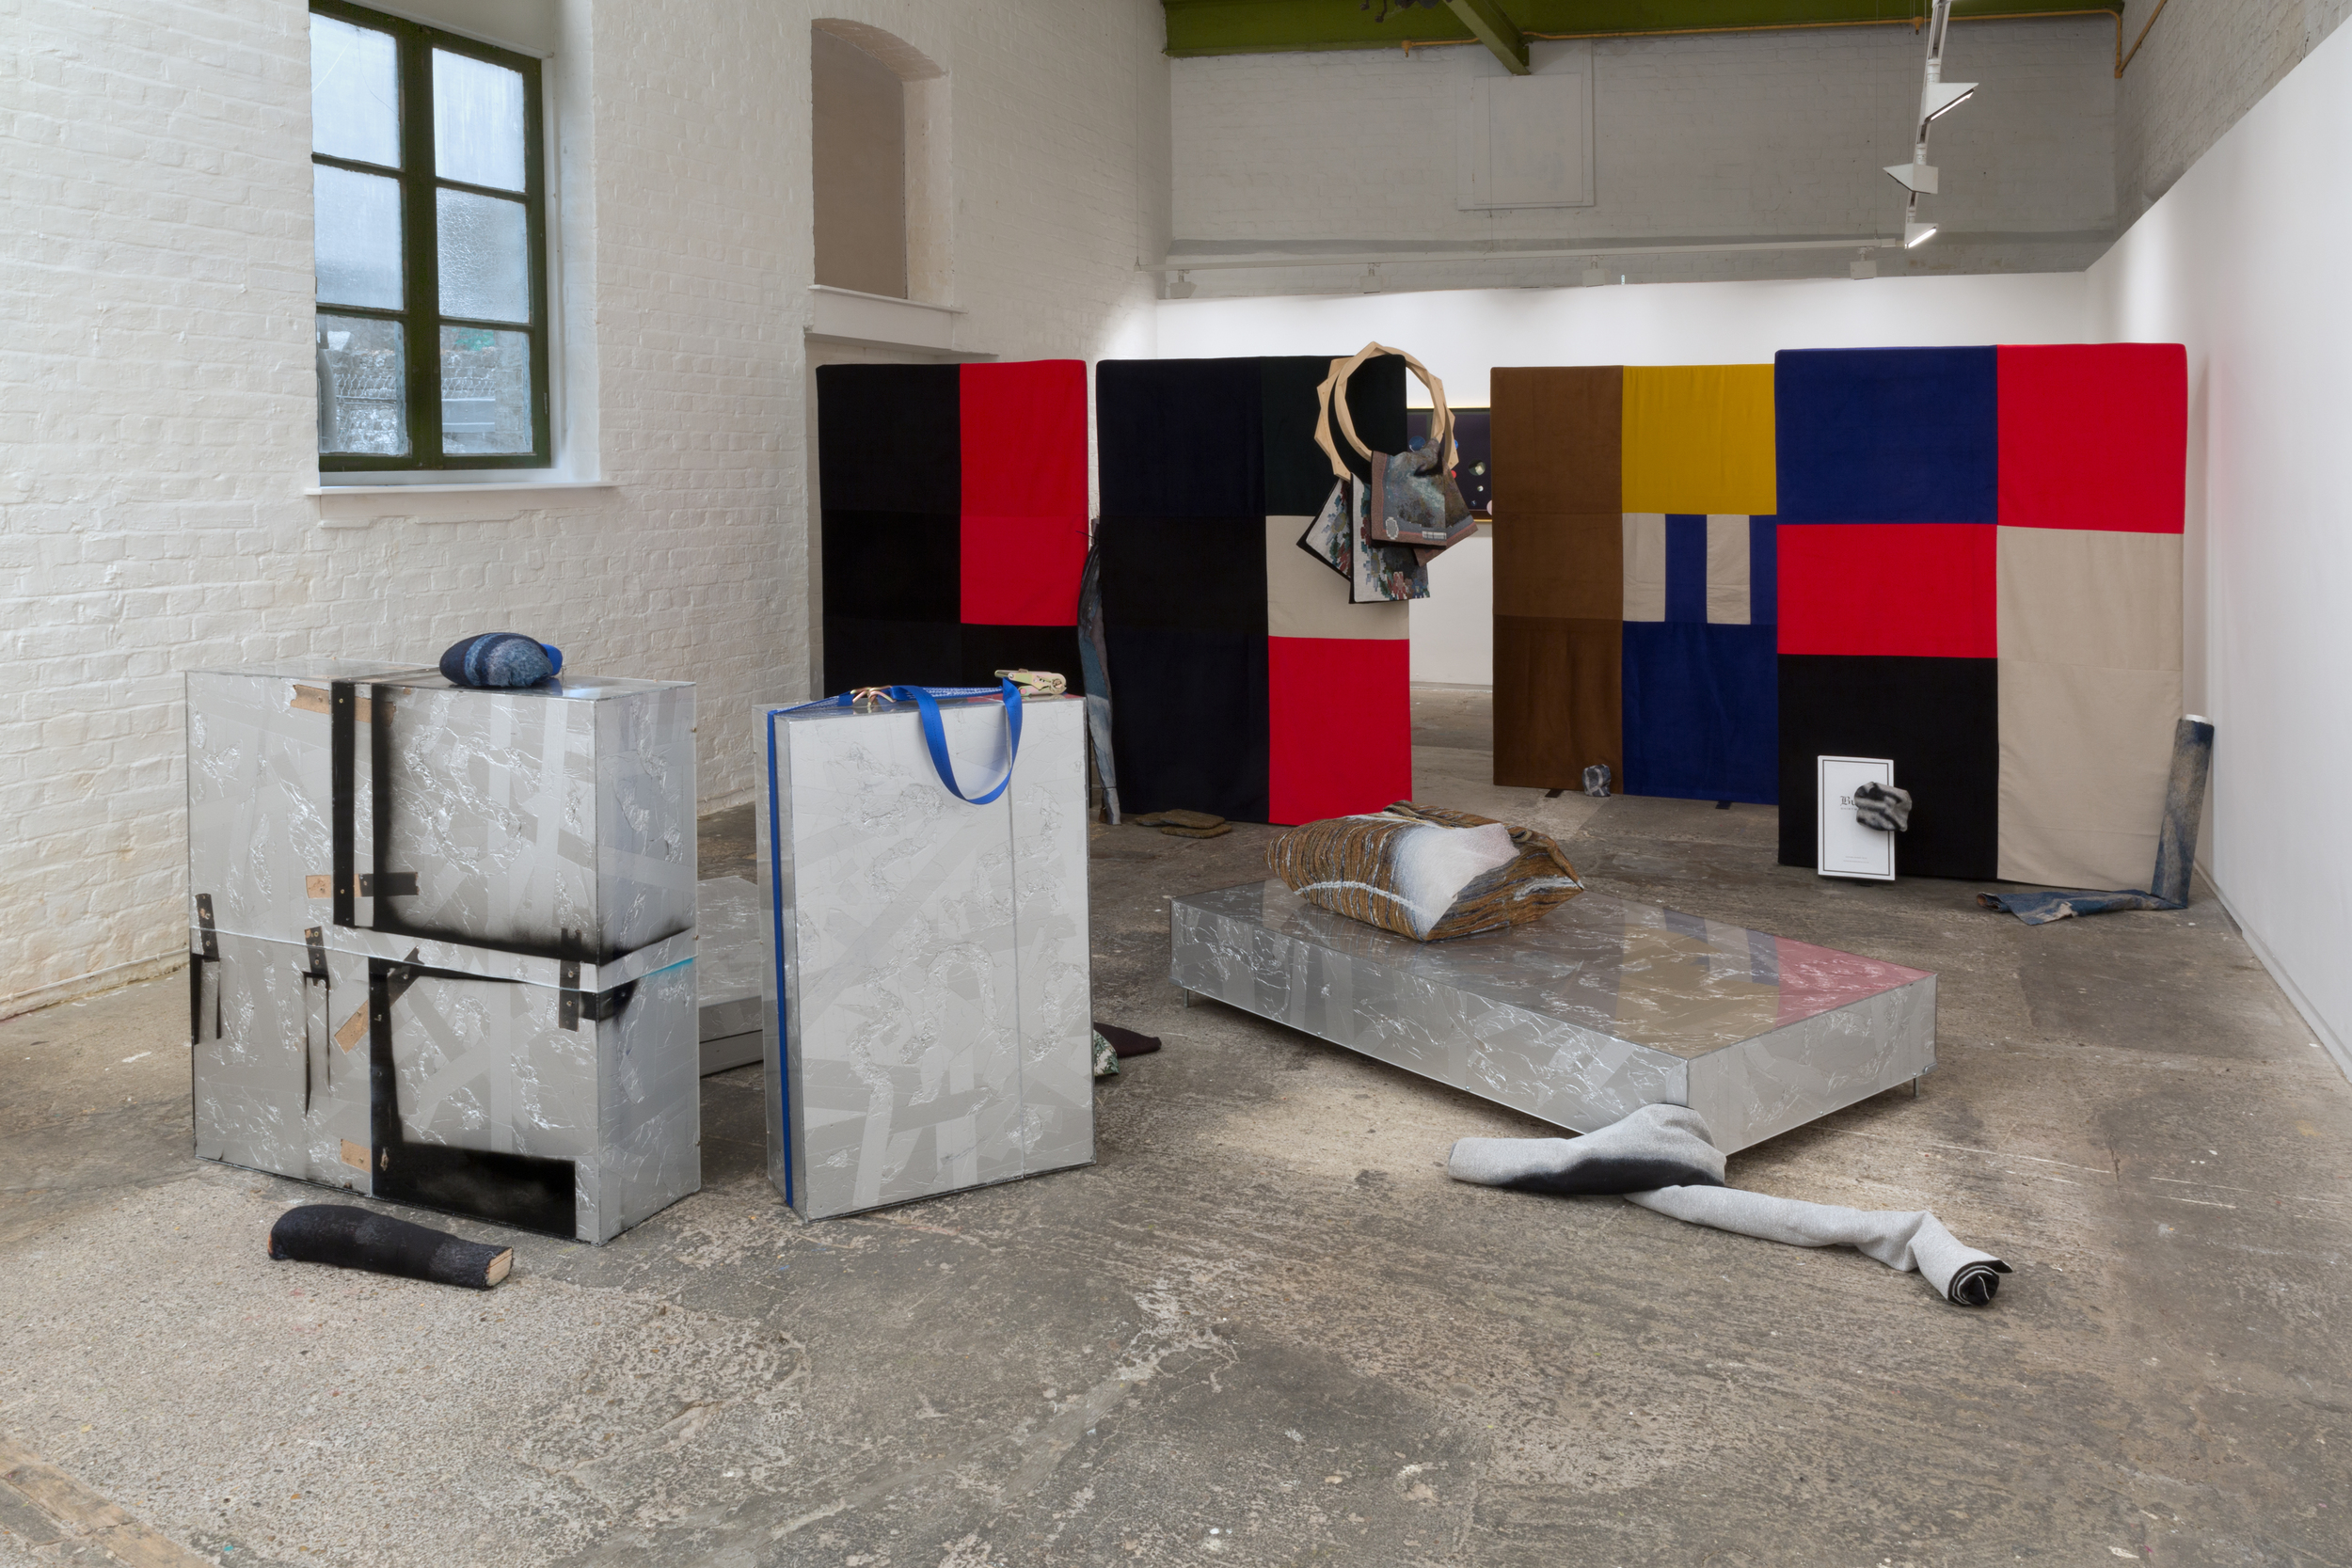 Between Acts , Installation View (2015). Courtesy of Nigel Massey & Limbo. Photo: Peter White